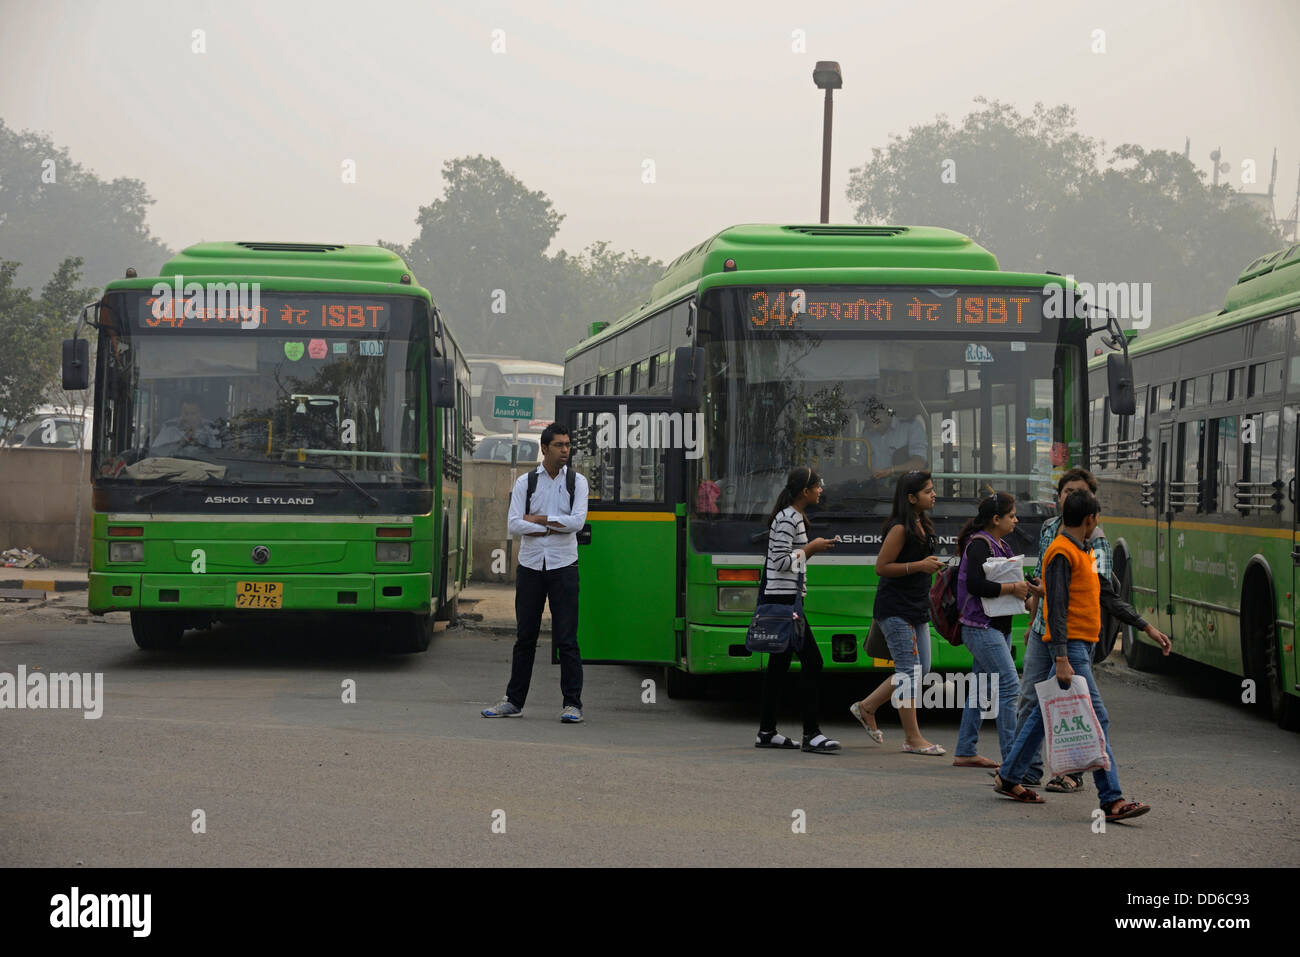 modernized bus travel in india The majority of transportation-related emissions of black carbon (bc), fine   vehicles in a fleet, including trucks and buses, on an accelerated schedule  in  india would qualify for this type of fleet modernization program.